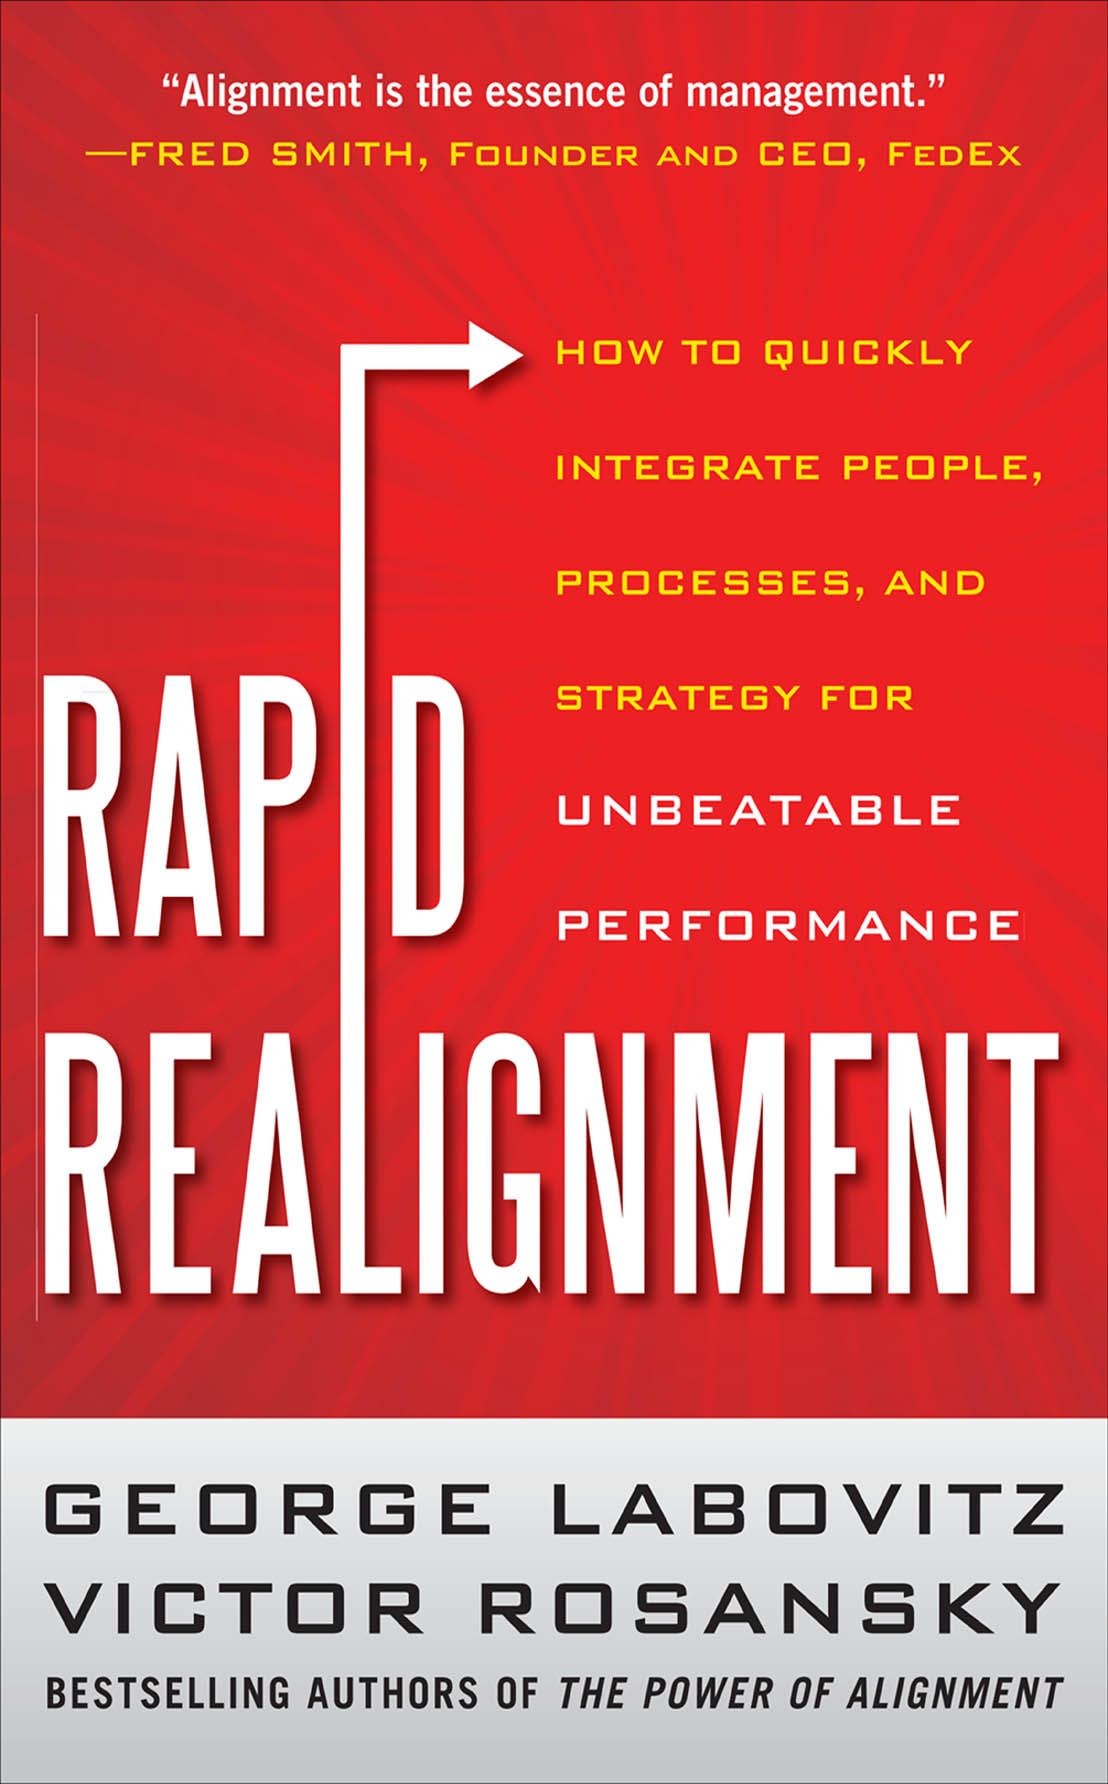 Rapid Realignment: How to Quickly Integrate People, Processes, and Strategy for Unbeatable Performance By:  Victor Rosansky,George Labovitz